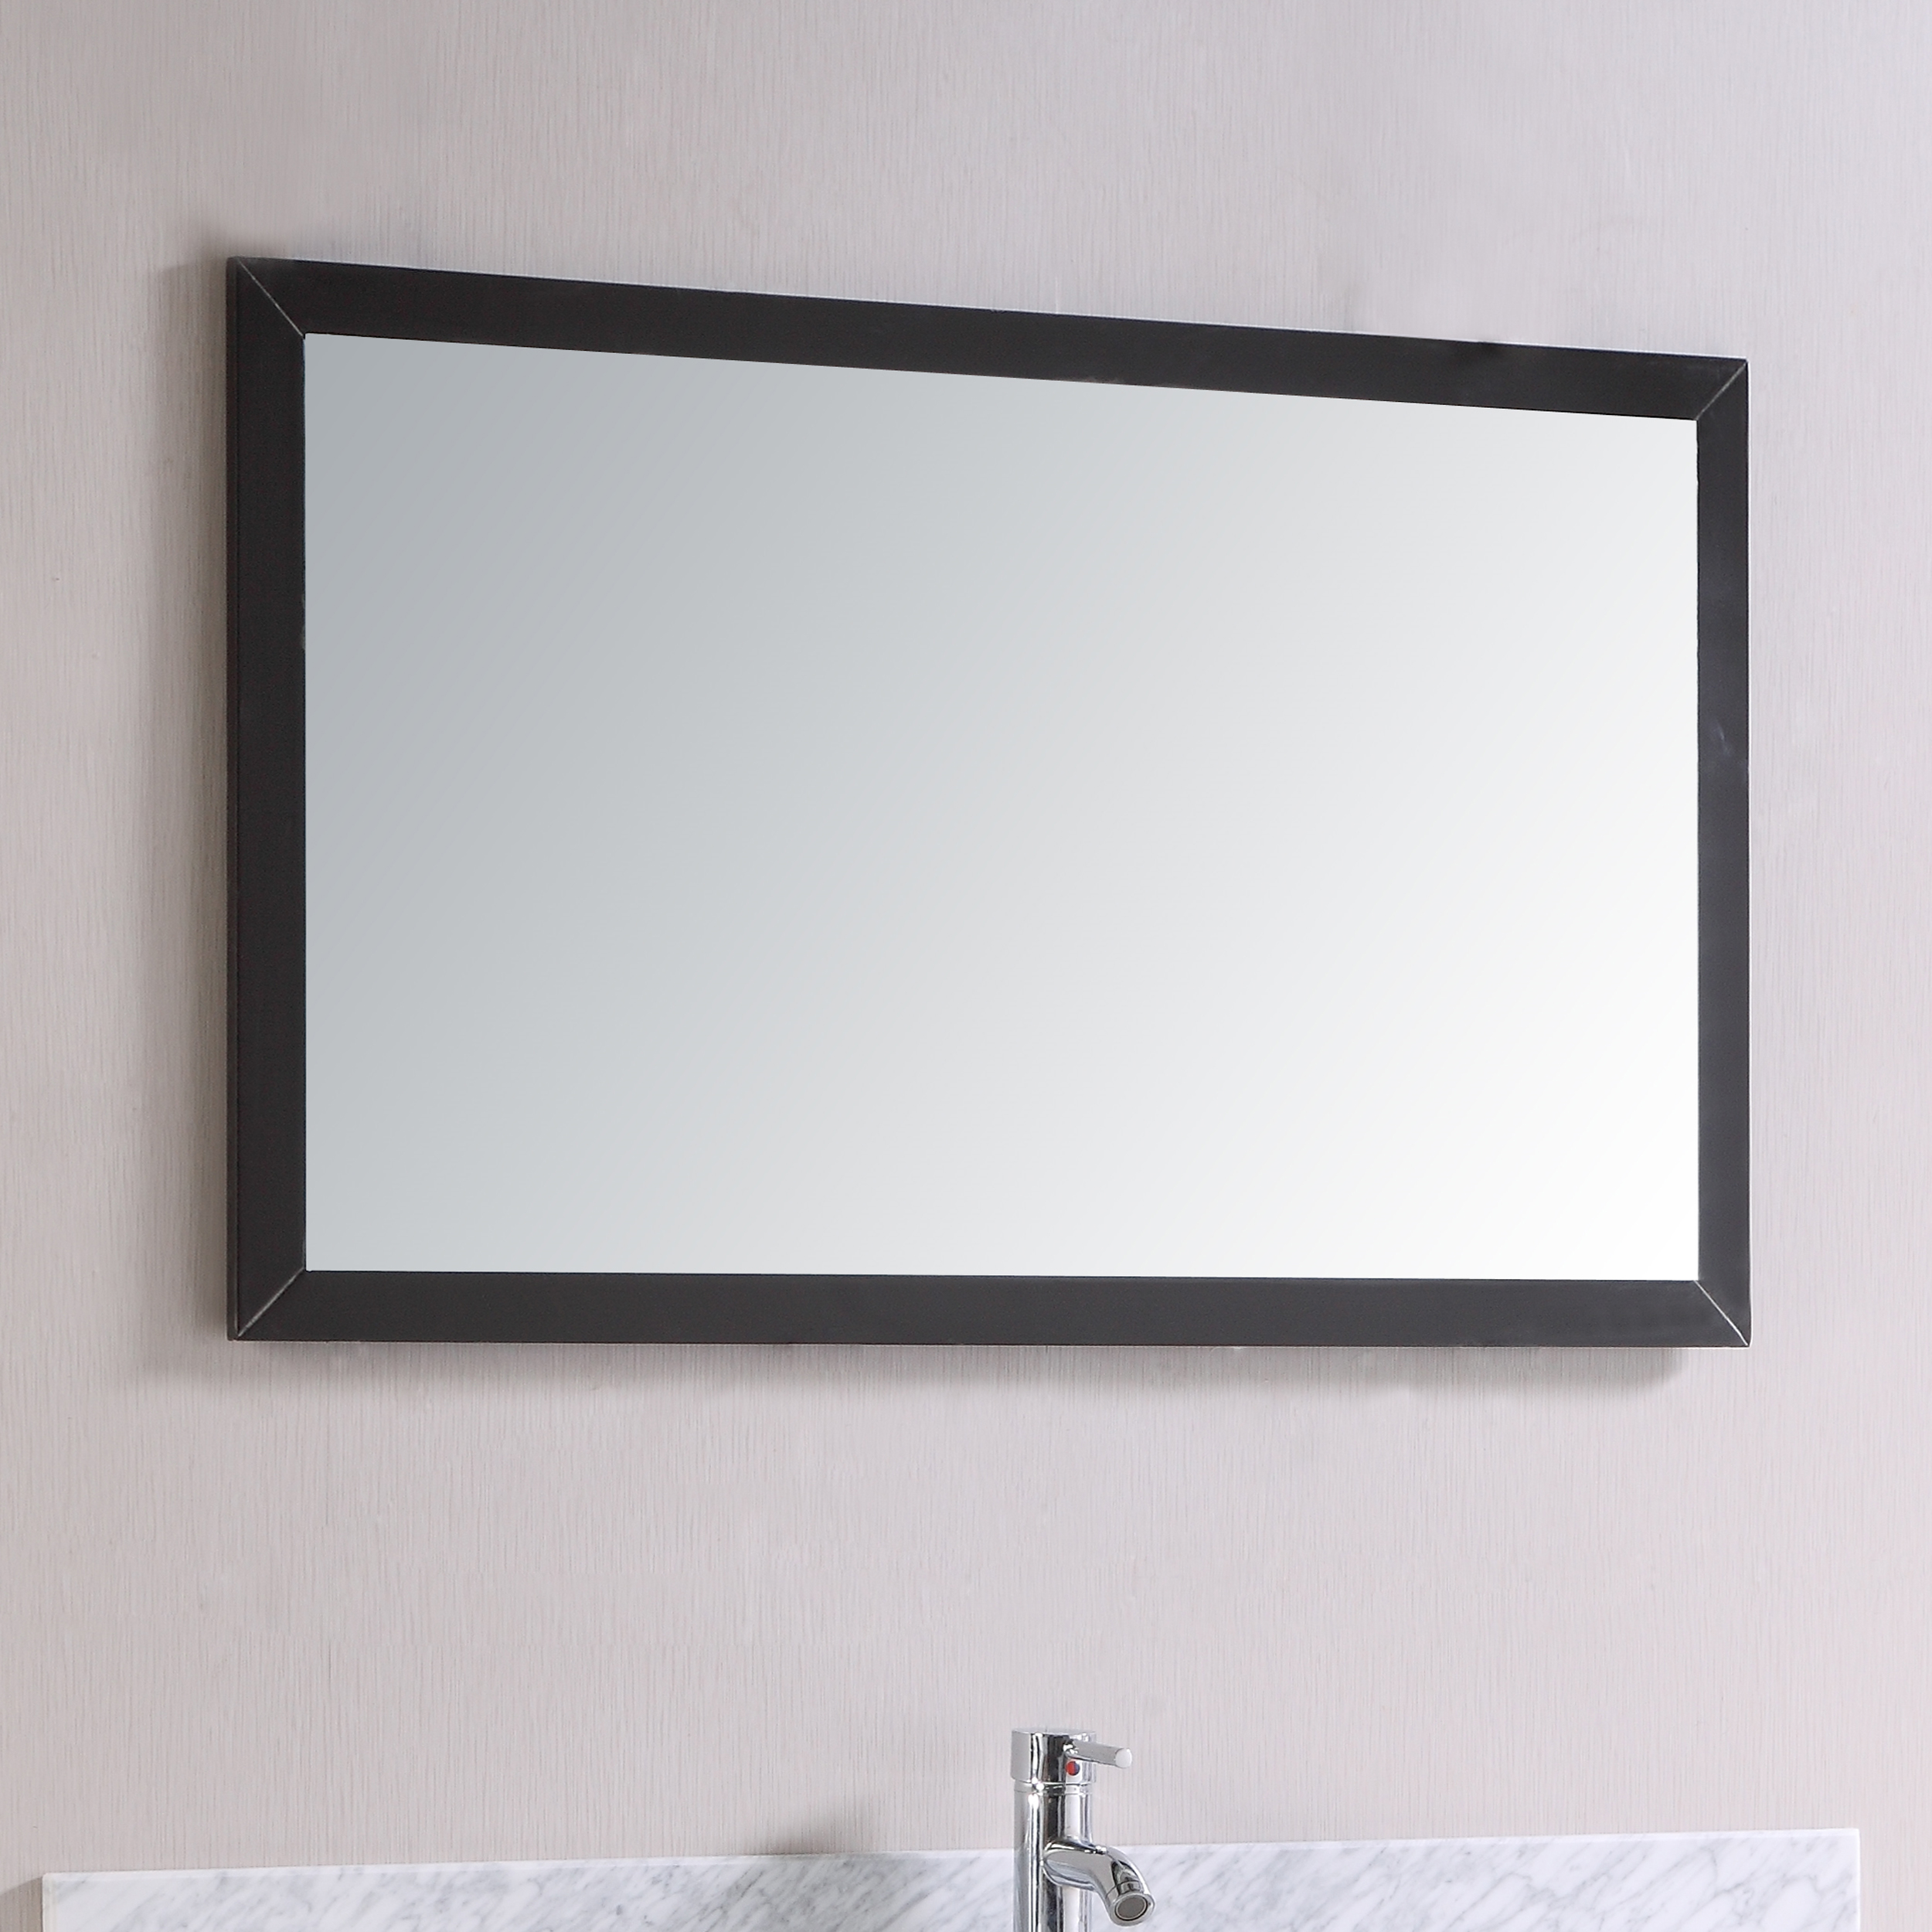 Totti Shaker 36 Espresso Framed Bathroom Wall Mirror Decors Us